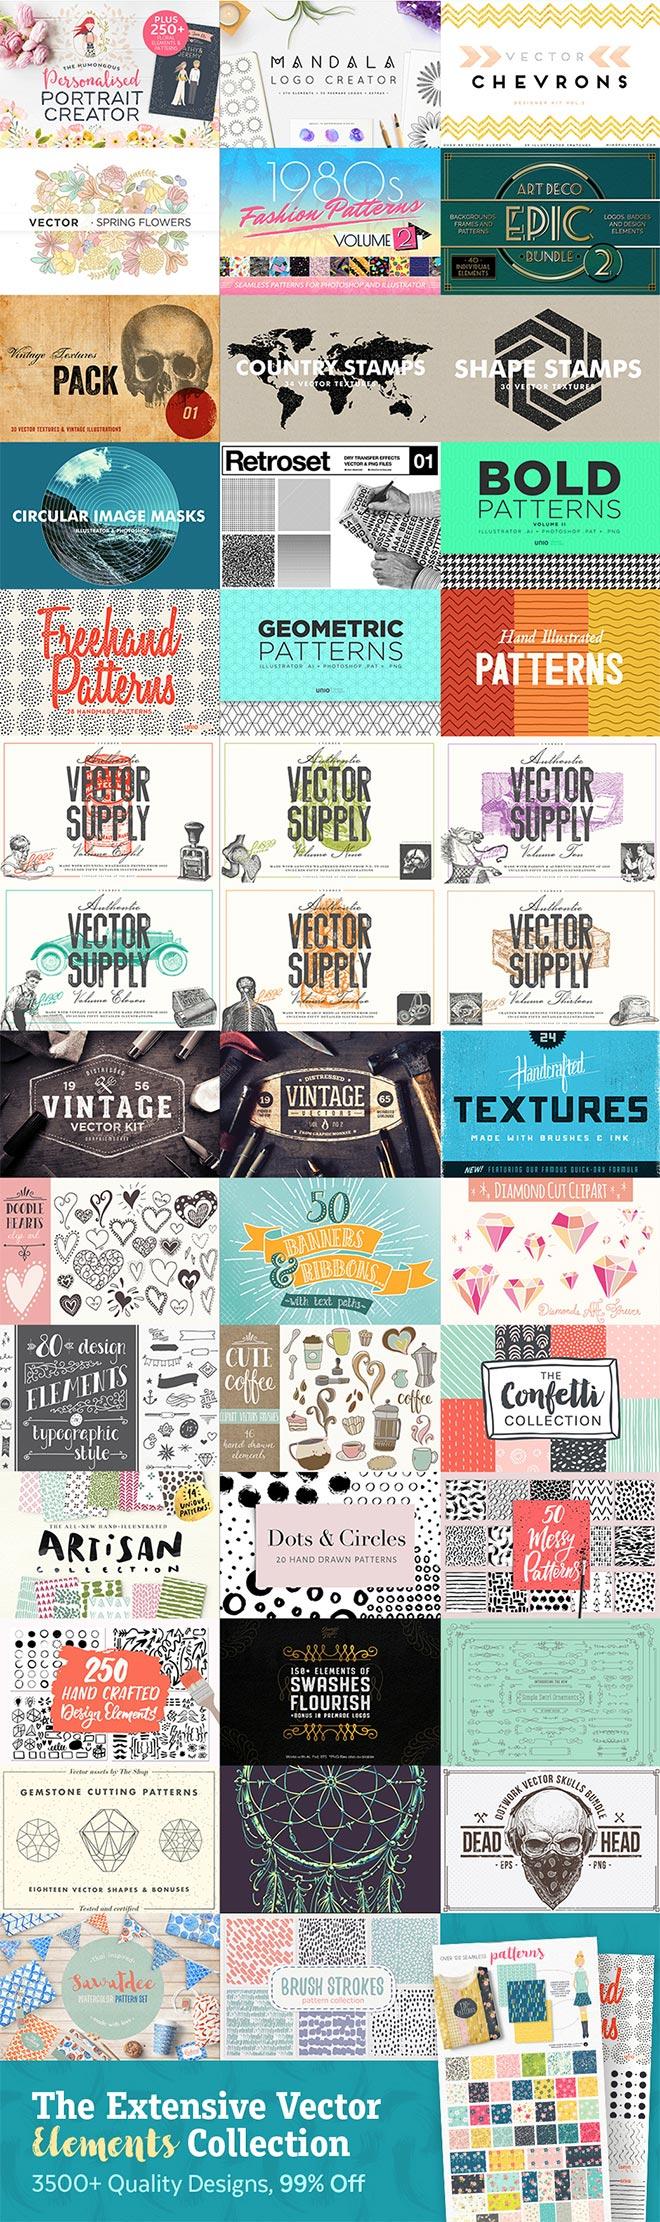 The Extensive Vector Collection